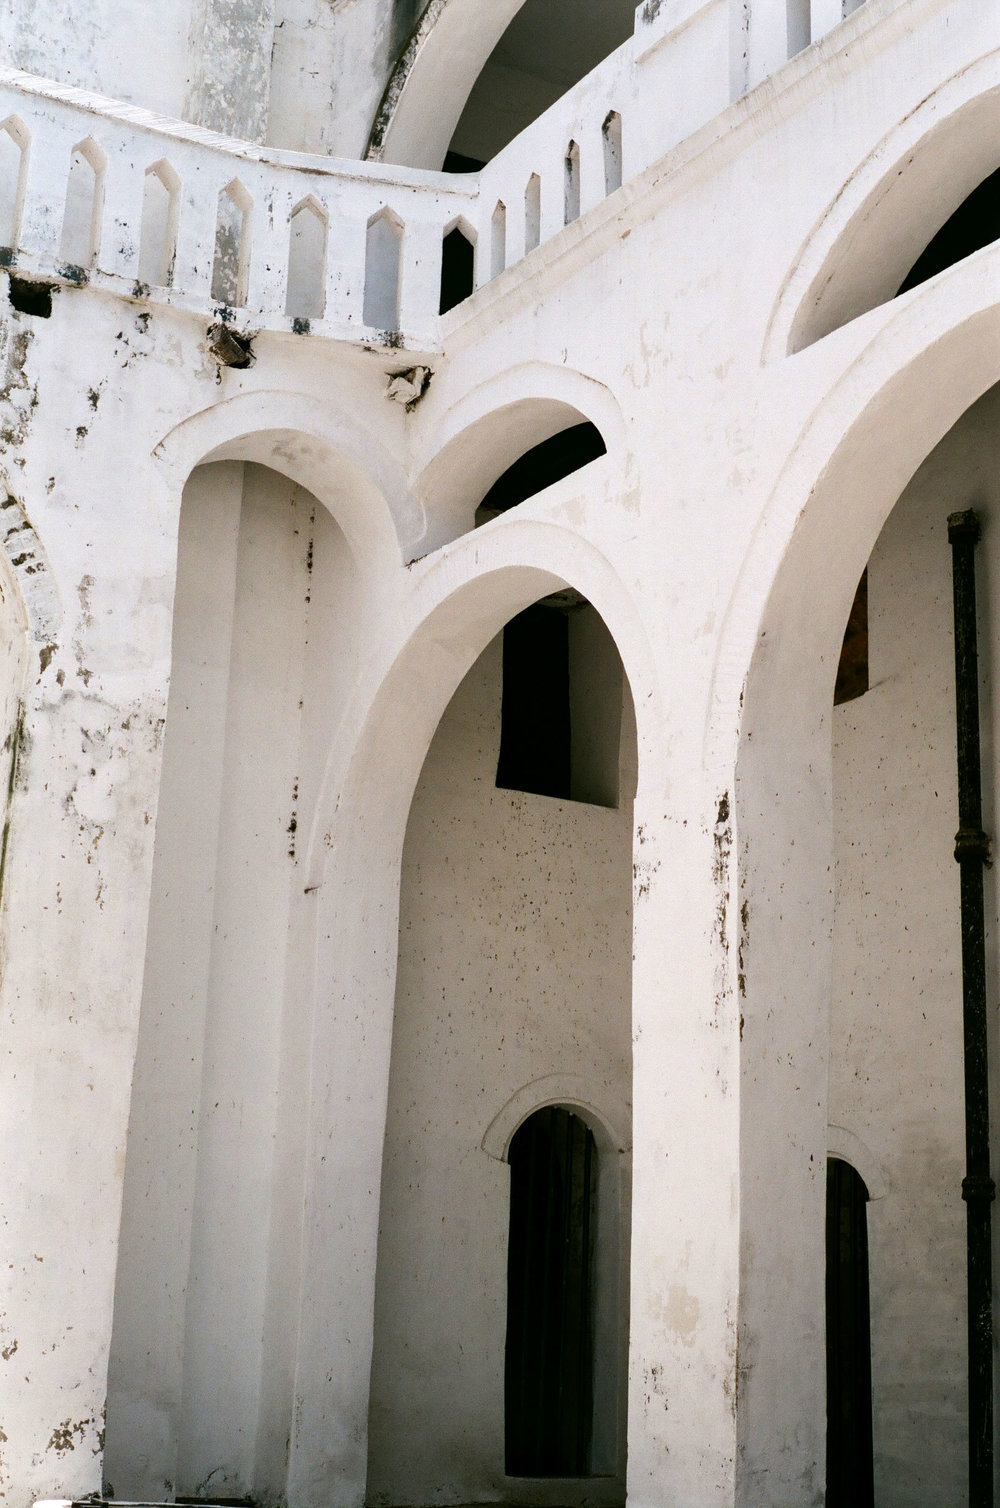 Arches in Elmina Castle